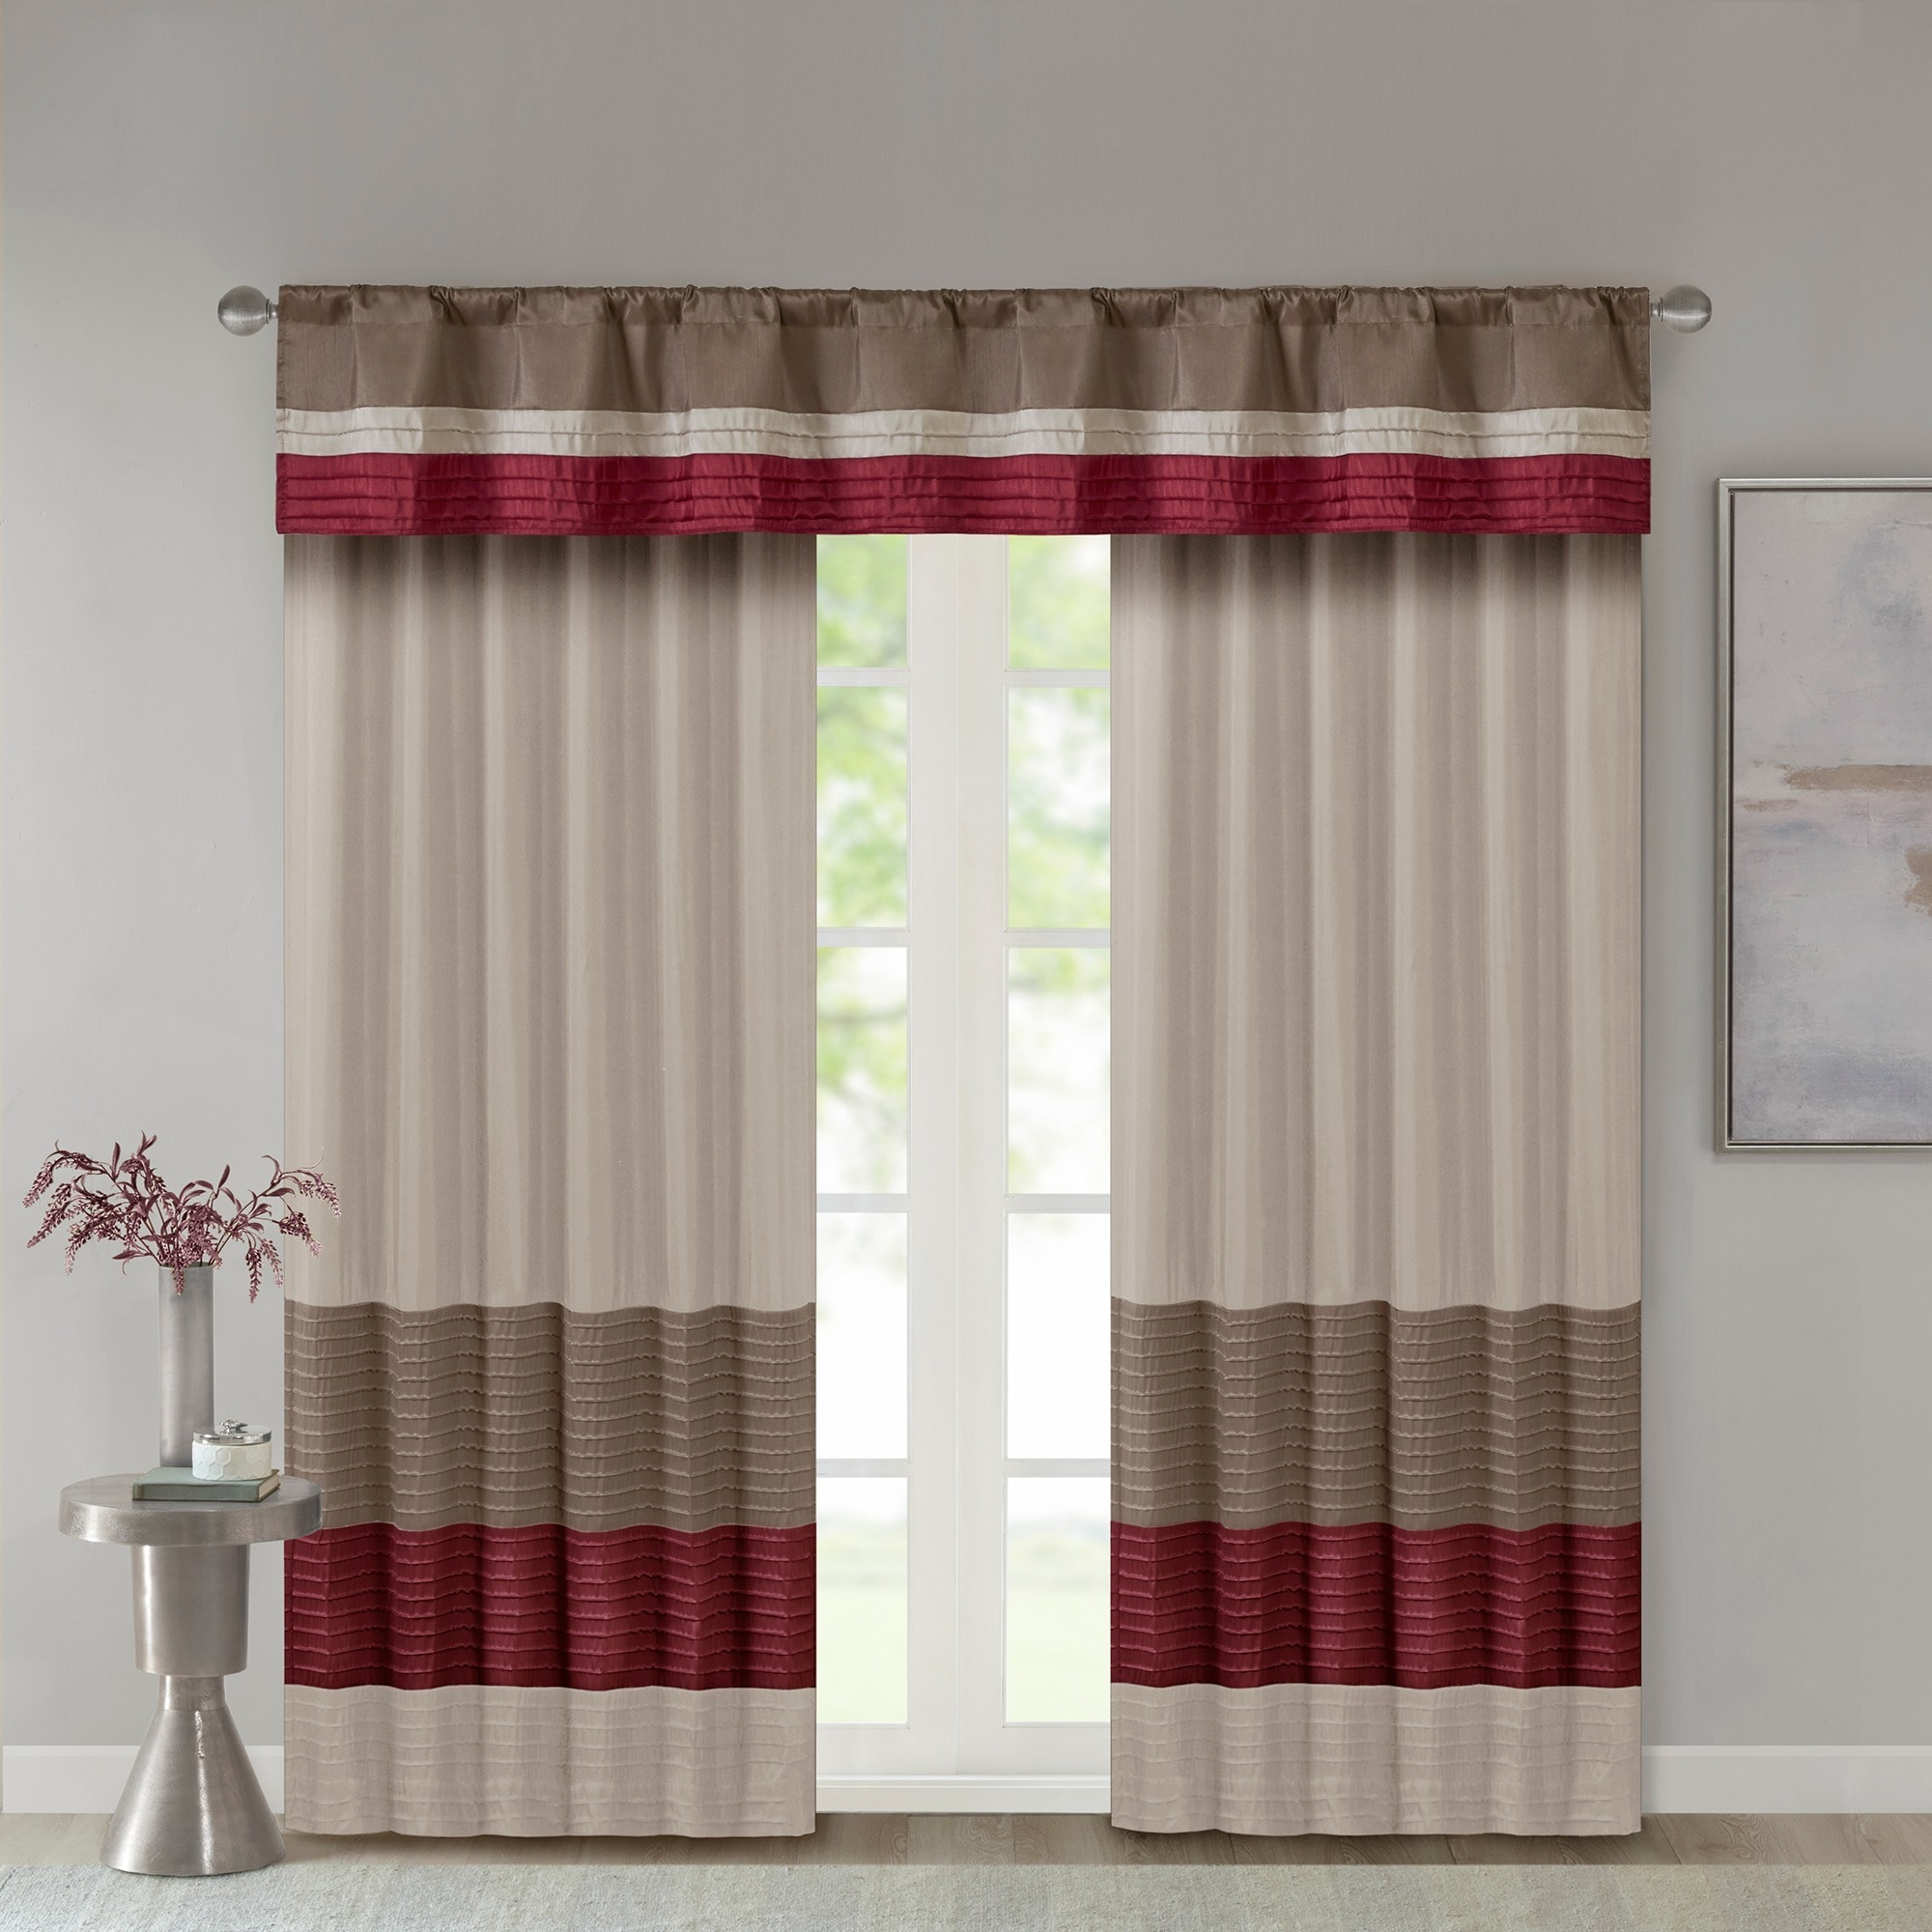 valance quilted lined silk valances allure window treatment p v x tailored